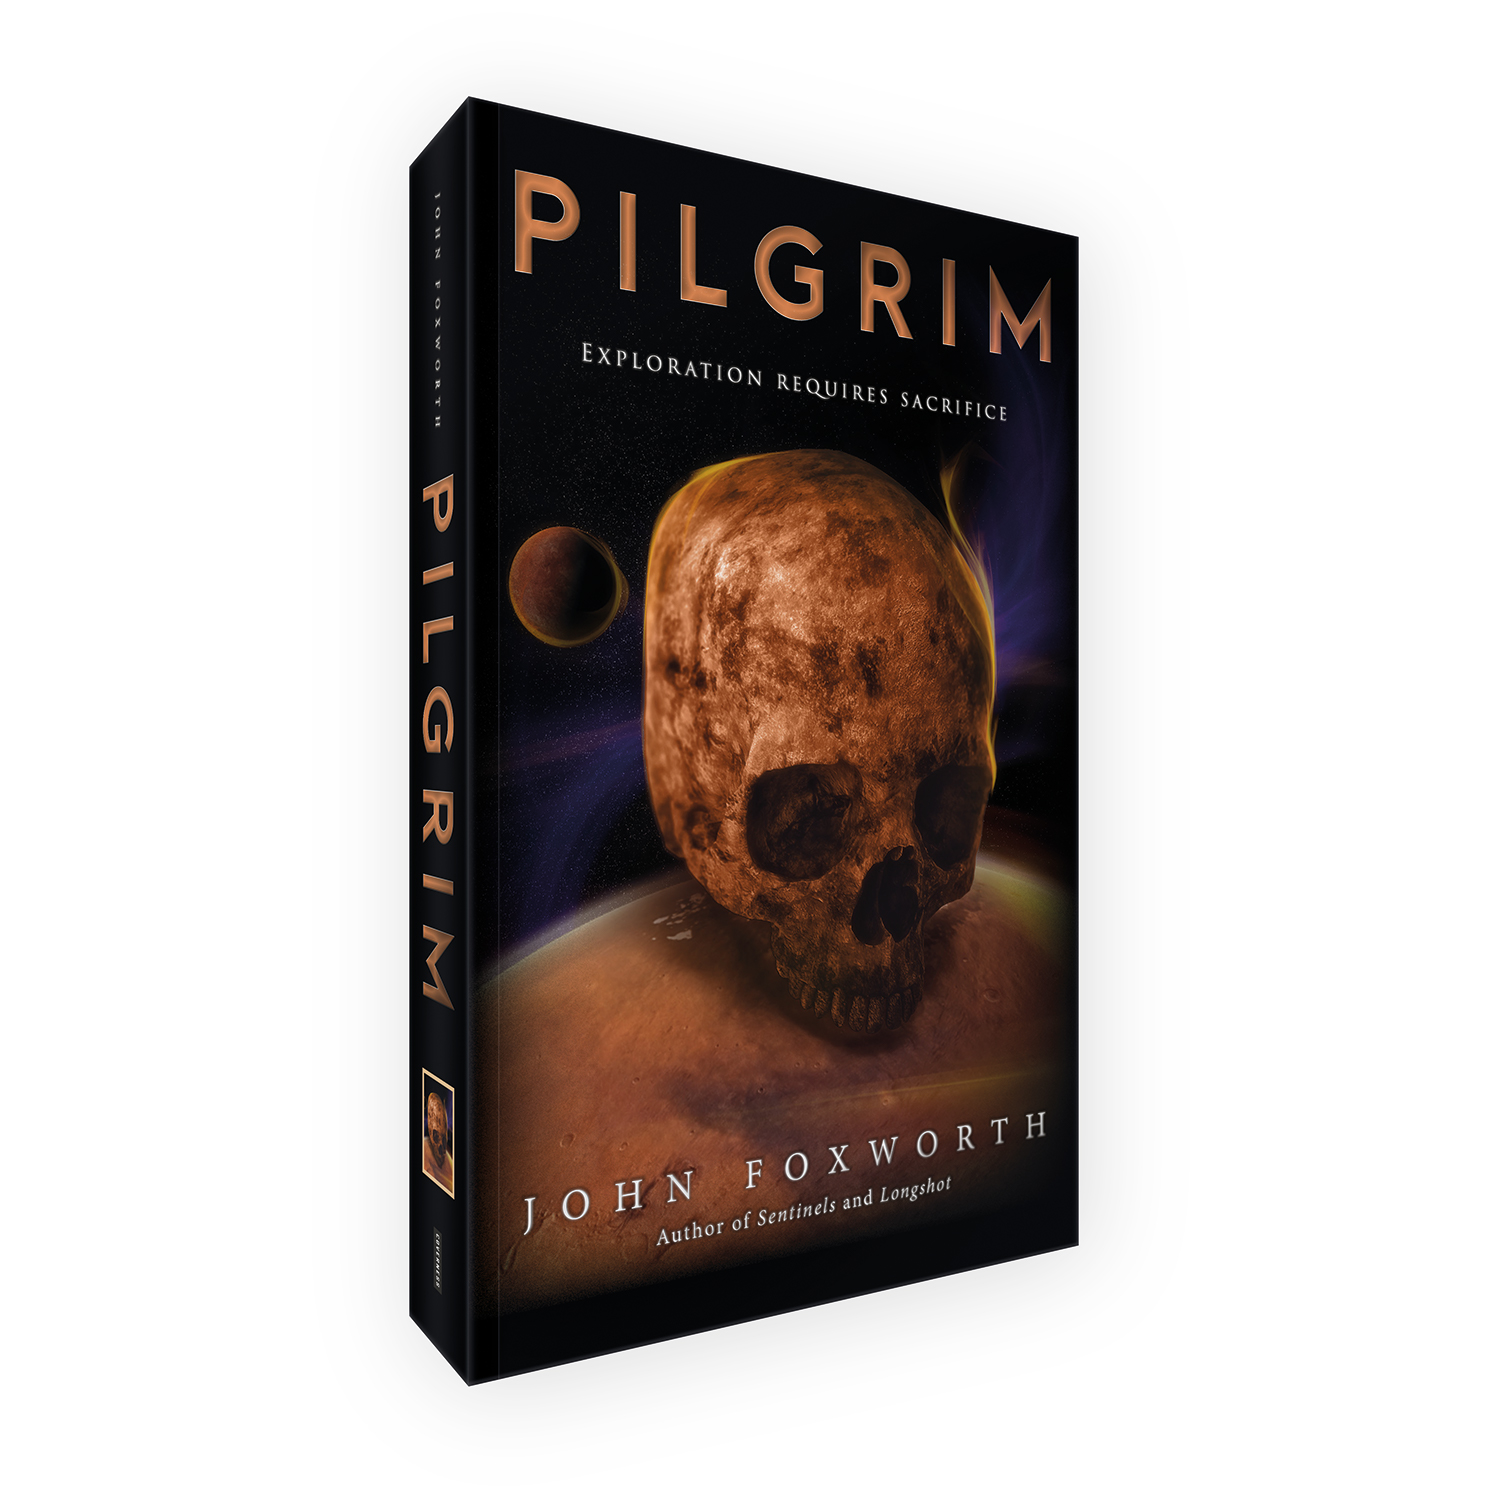 'Pilgrim' is a bespoke cover design for a modern deep-space scifi novel. The book cover was designed by Mark Thomas, of coverness.com. To find out more about my book design services, please visit www.coverness.com.